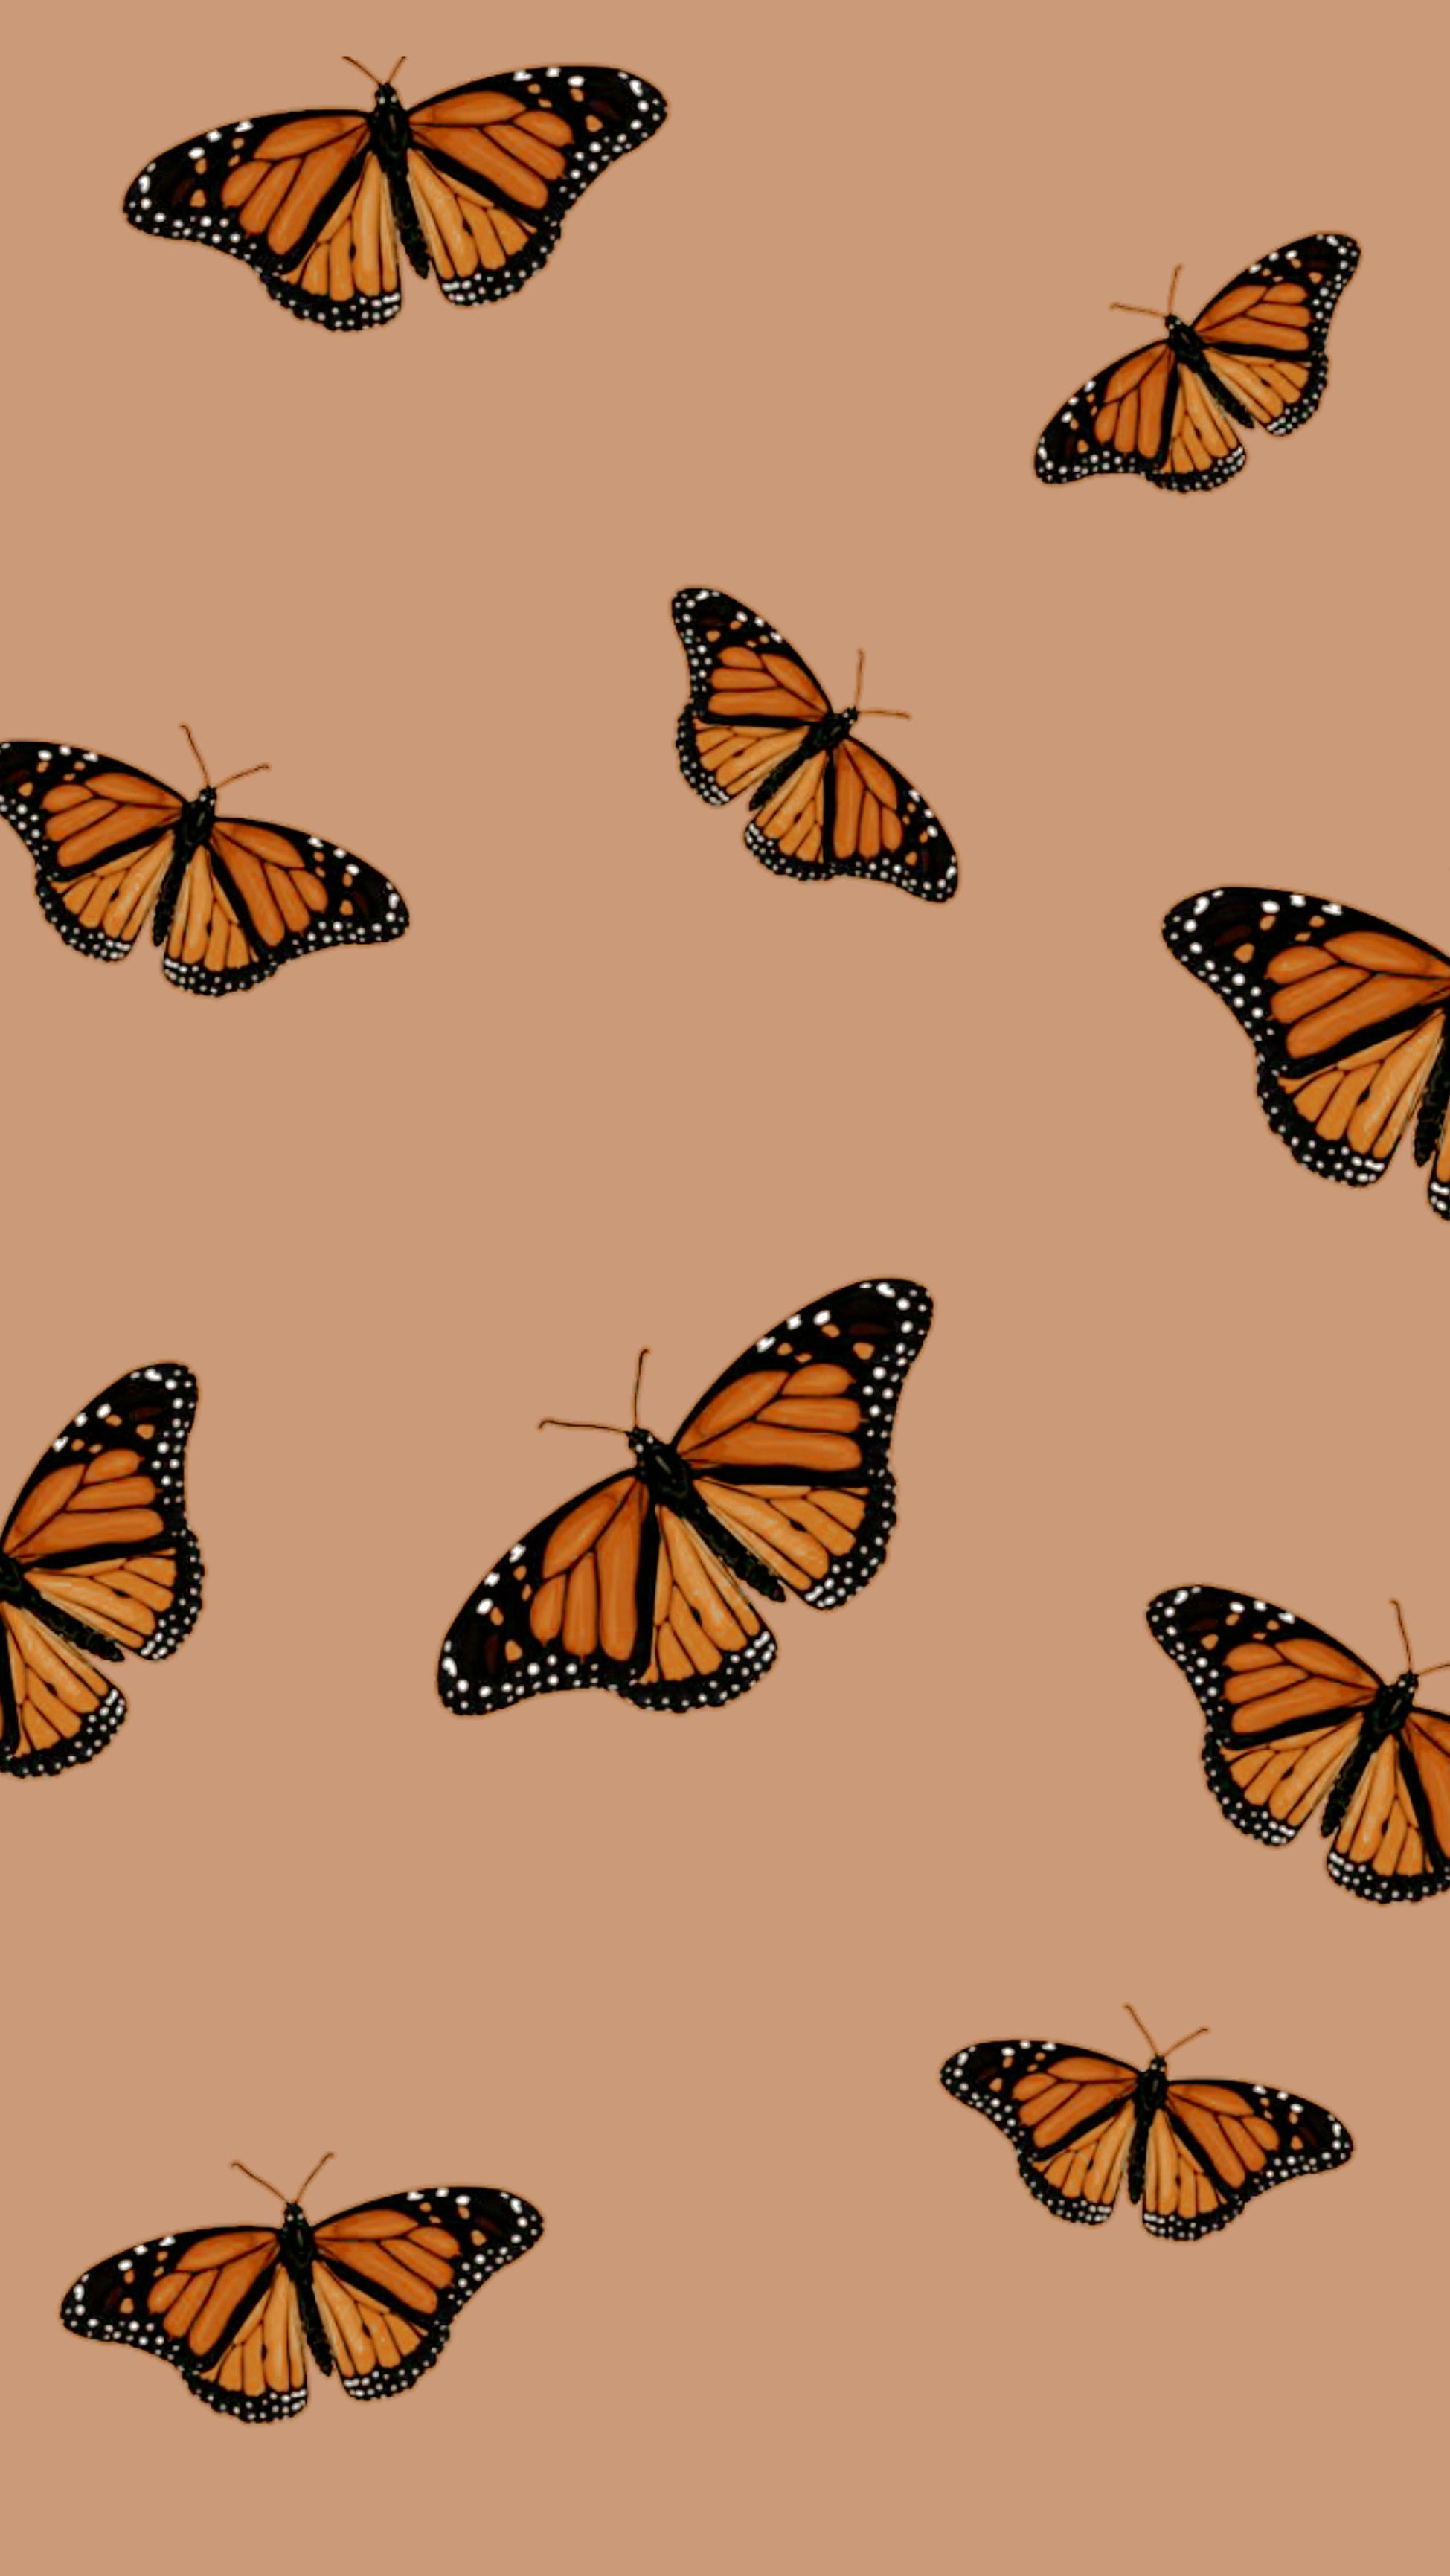 How To Create Your Dream Aesthetic Collage Wallpaper Create Discover With Picsart Butterfly Wallpaper Iphone Wallpaper Vintage Pretty Wallpaper Iphone